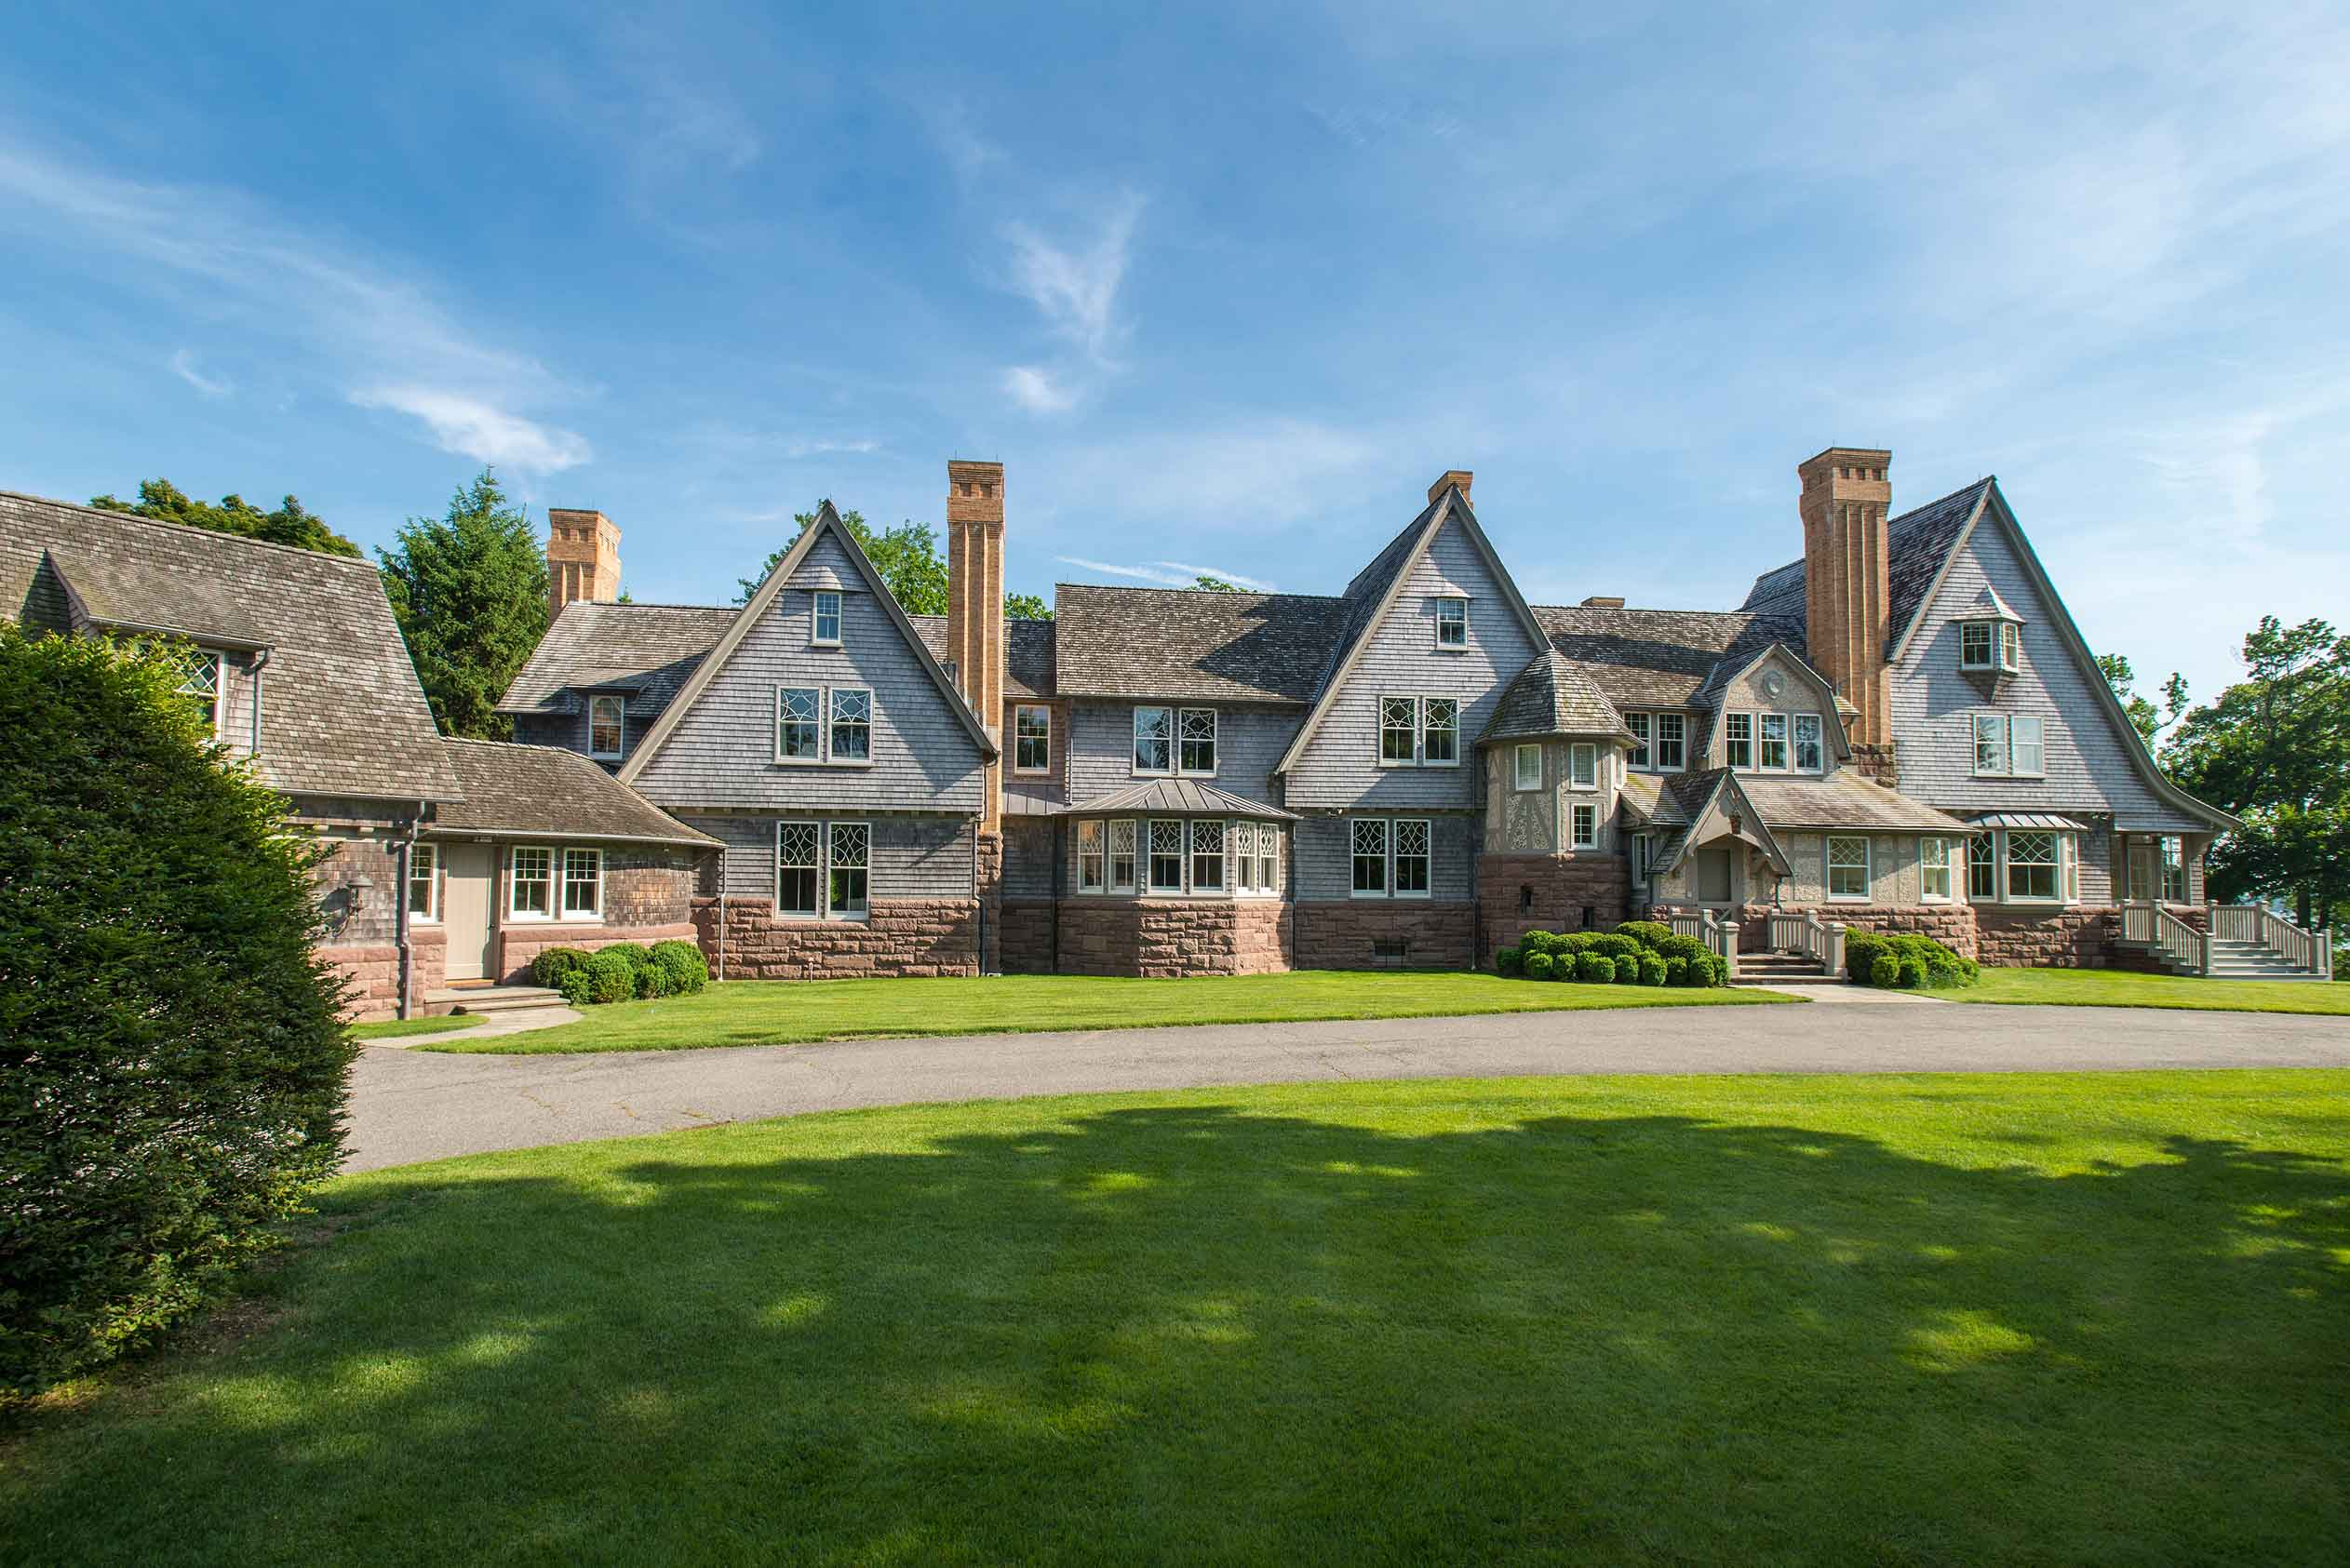 This centerpiece of this grand Belle Haven estate is a classic New England shingle-style mansion.